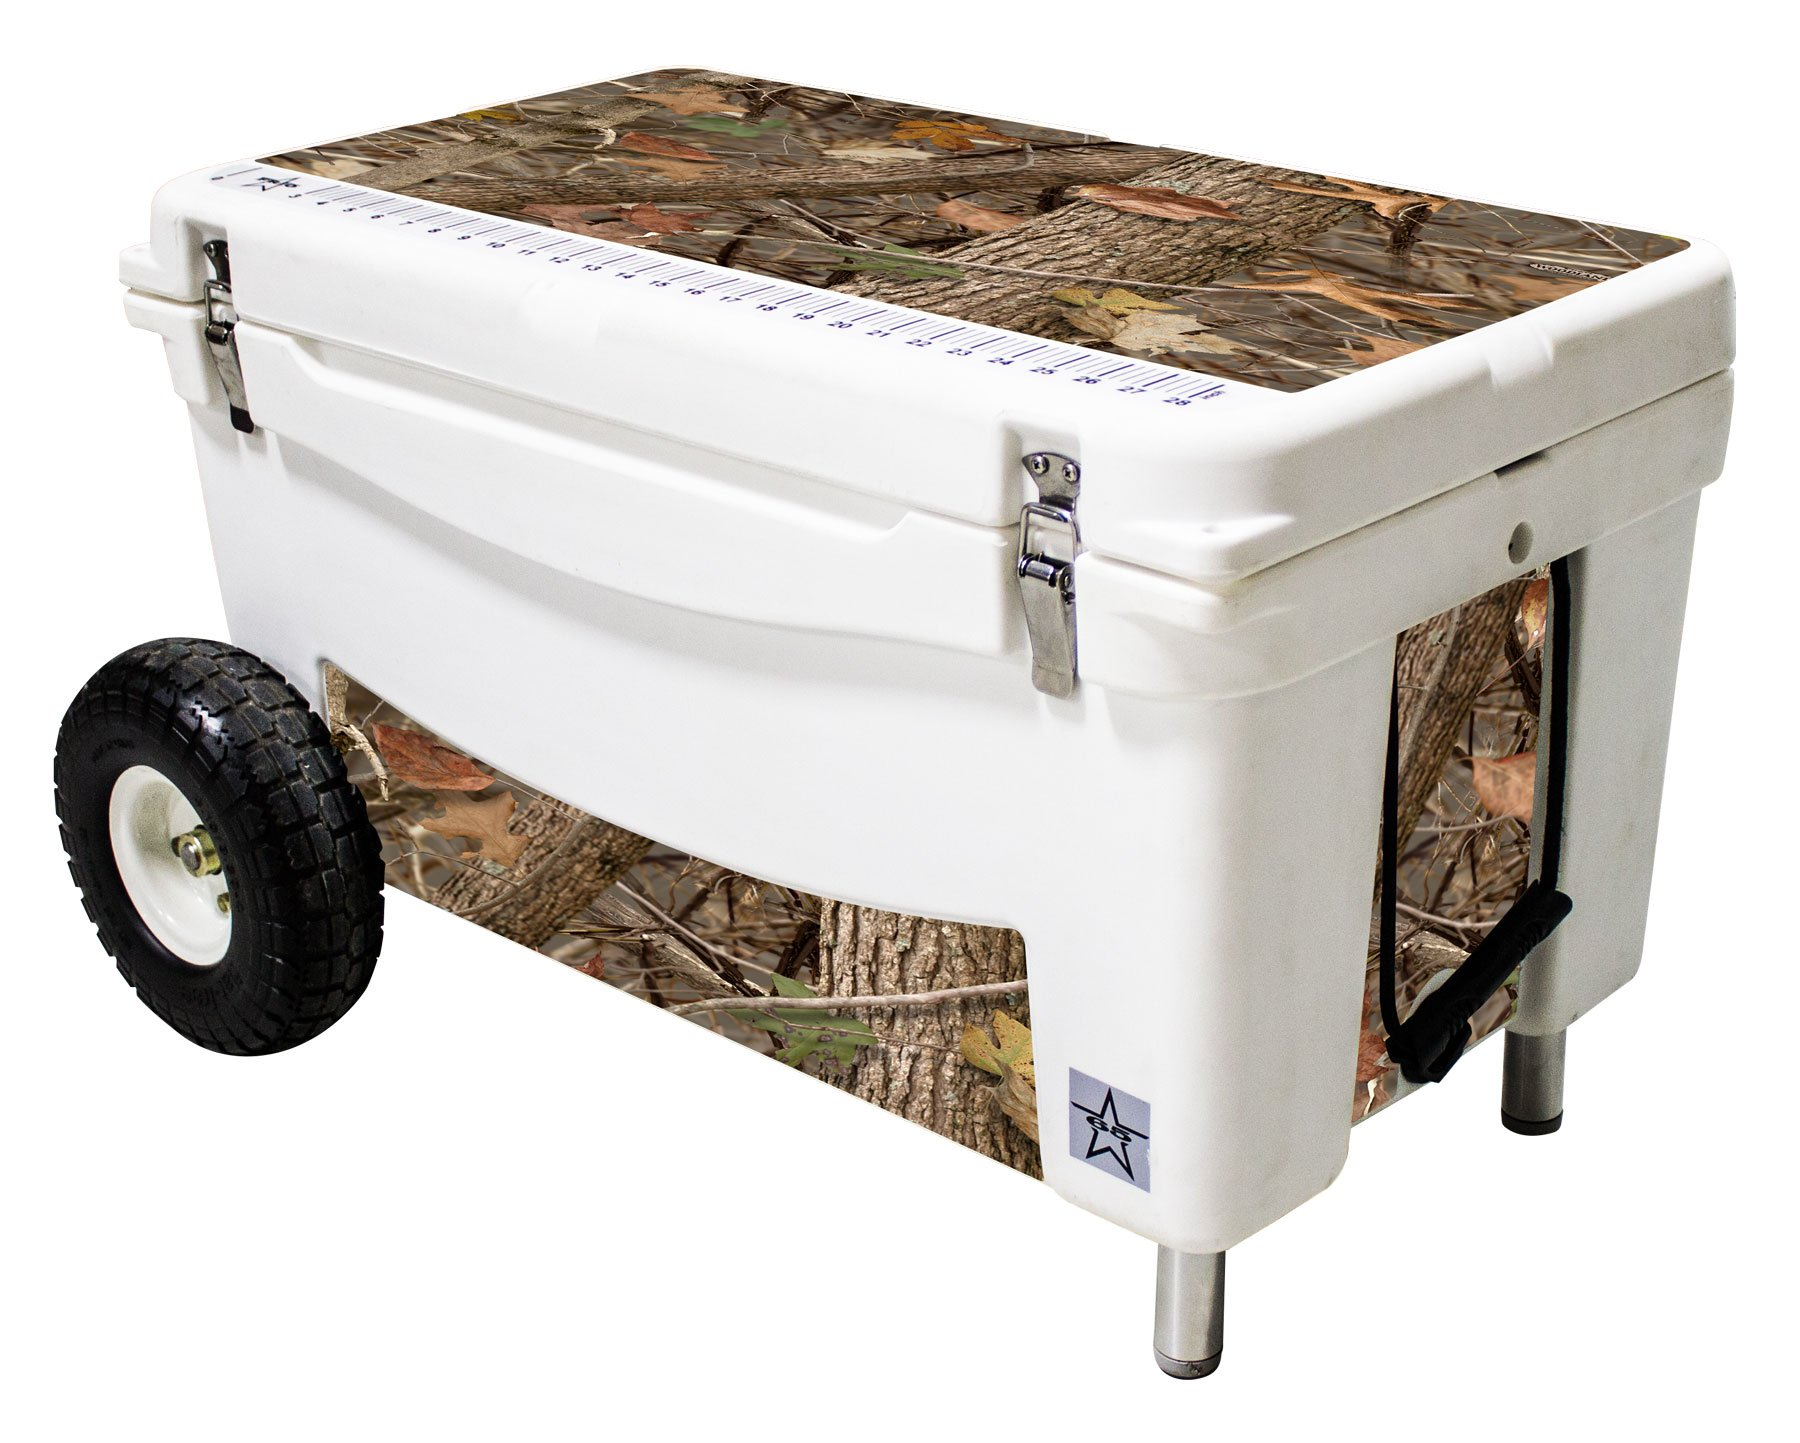 Frio Ice Chests 65Qt Extreme Wheeled White Hard Side with King's Camo Woodland Theme Vinyl Wrap and Built-In Motion Sensitive Light Bar with Bottle Openers by Frio Ice Chests